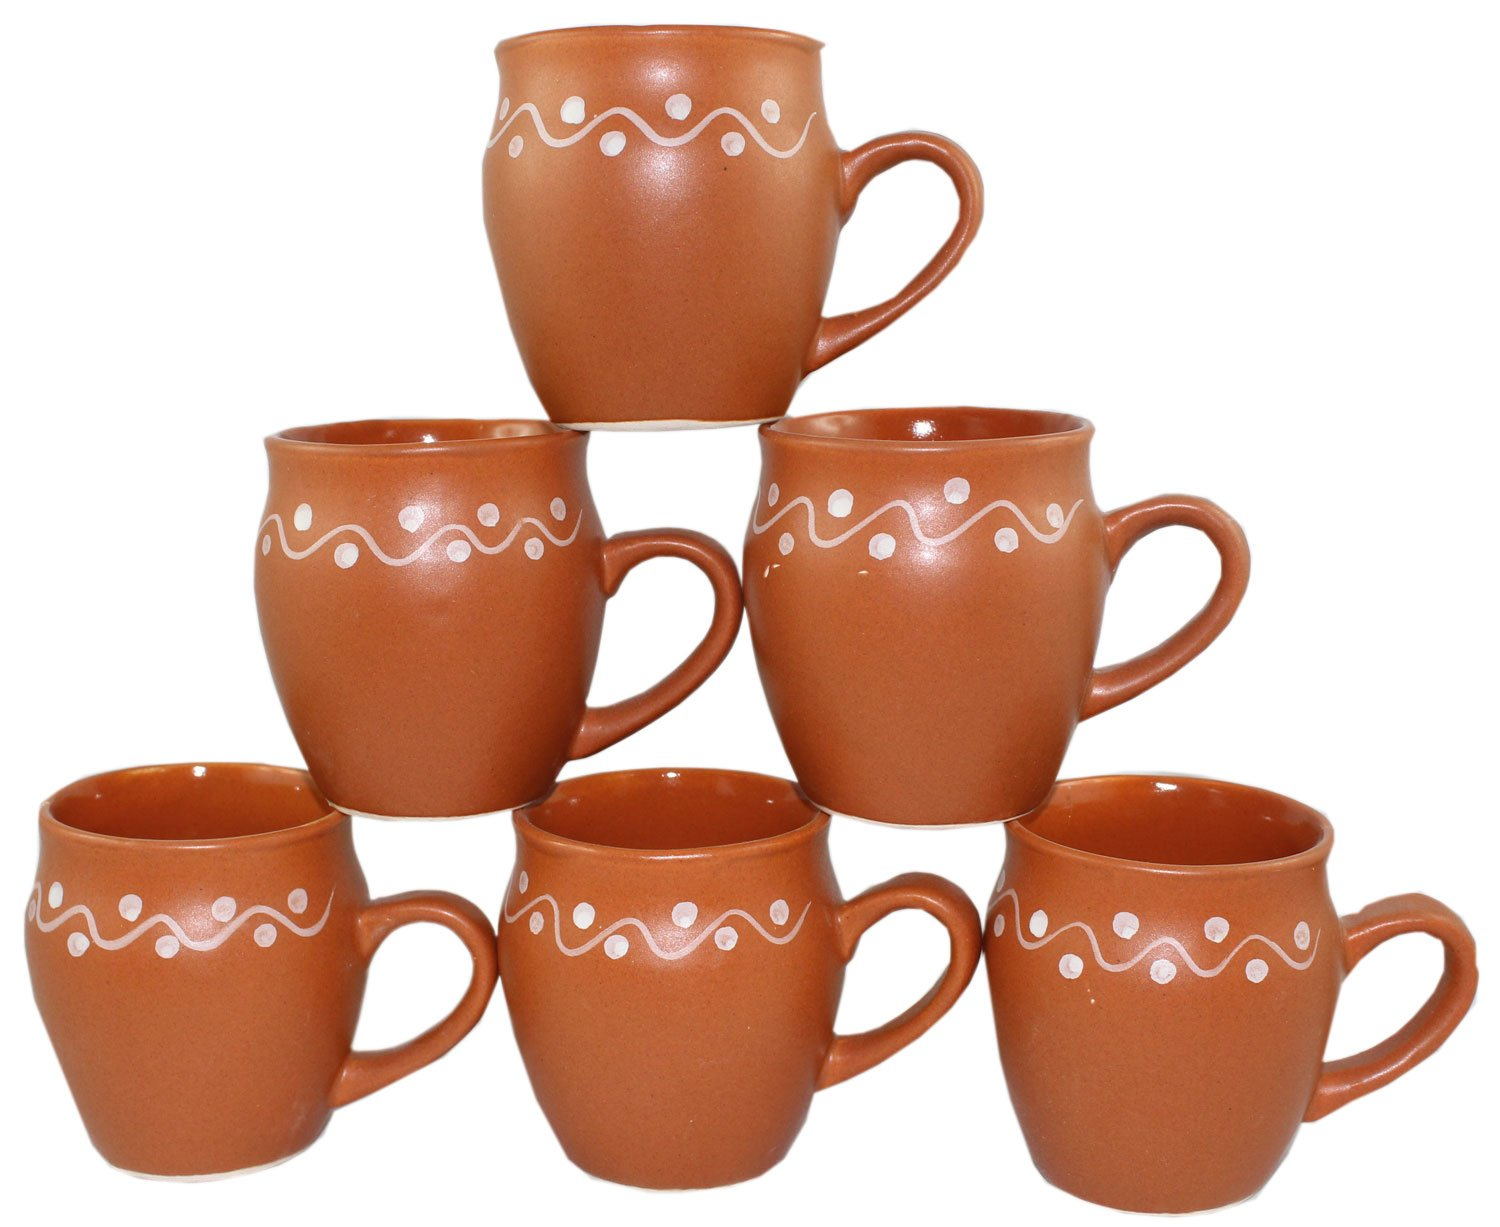 Odishabazaar Kulhar Kulhad Cups Traditional Indian Chai Tea Cup Set of 6 Tea Mug Coffee Mug by Odishabazaar (Image #1)